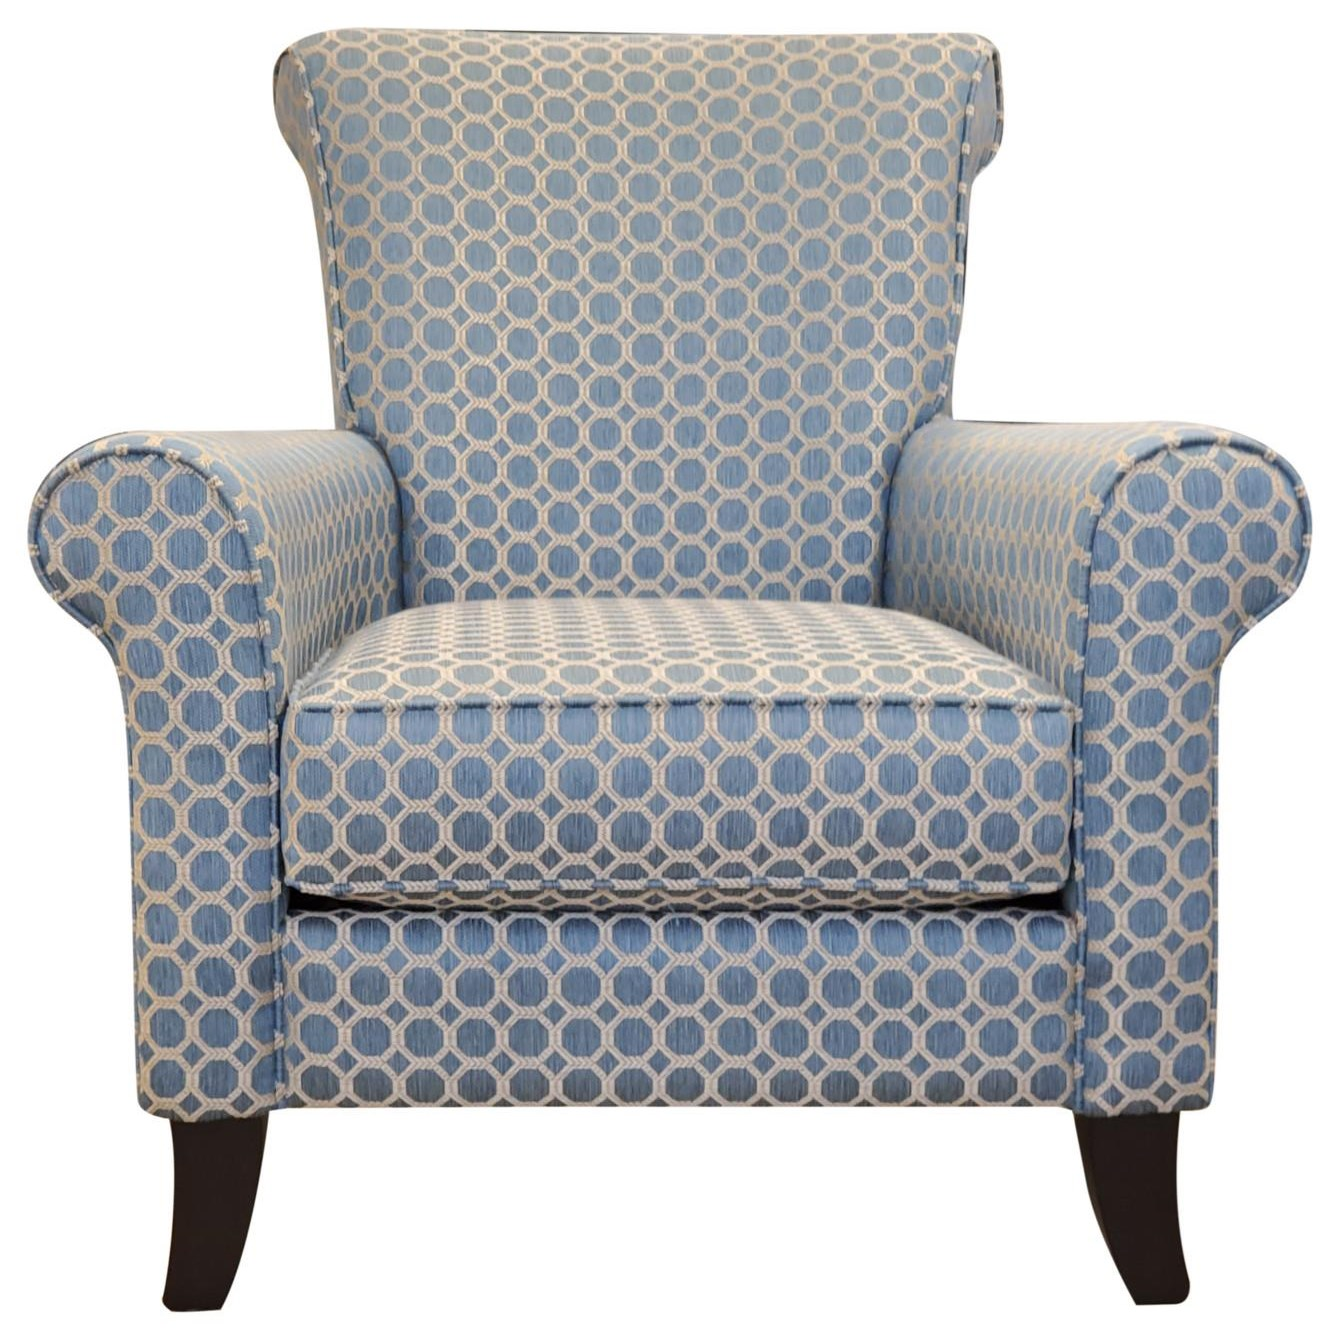 2470 2470C by Decor-Rest at Upper Room Home Furnishings